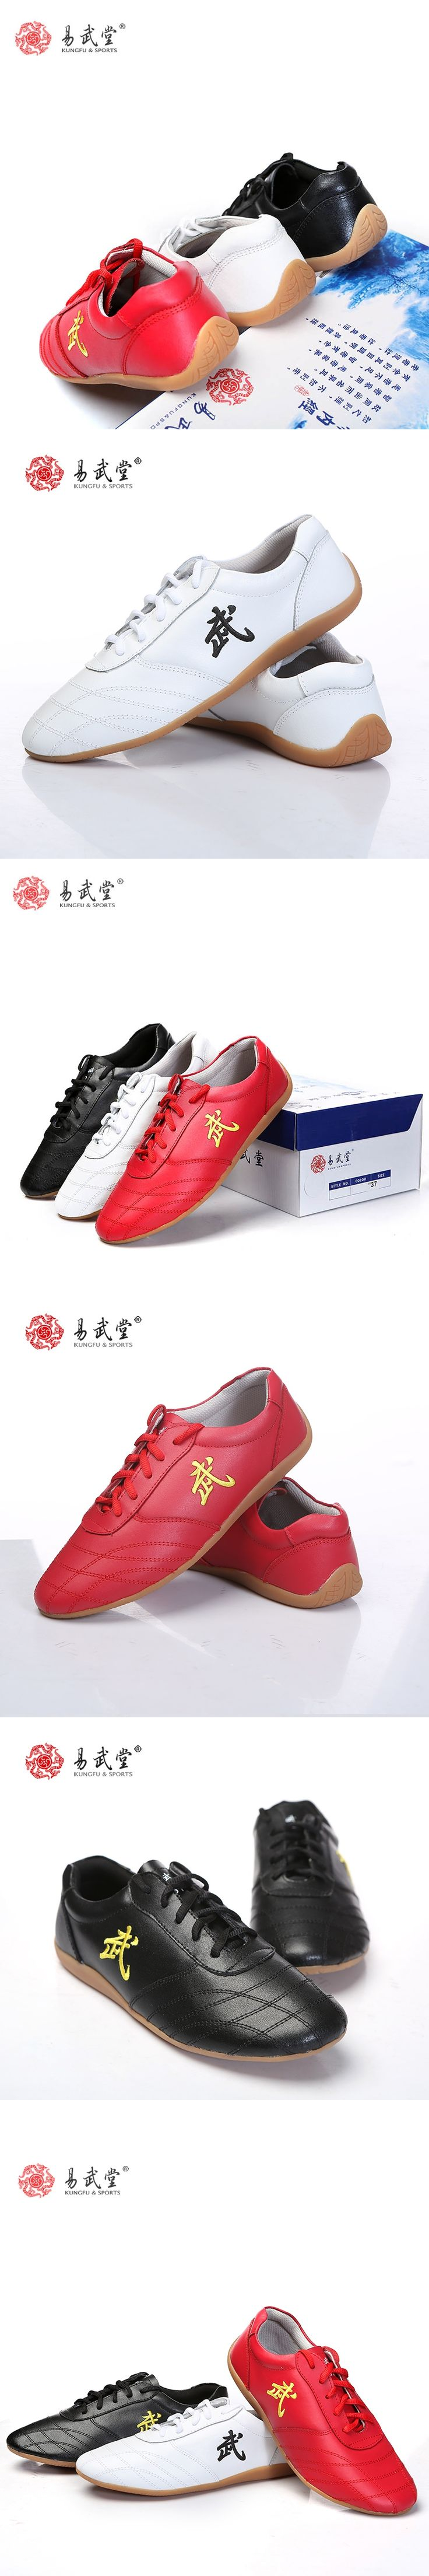 tai chi shoes taiji shoes chinese kung fu shoes Non-slip cow Muscle children wushu shoes chinese marial ars